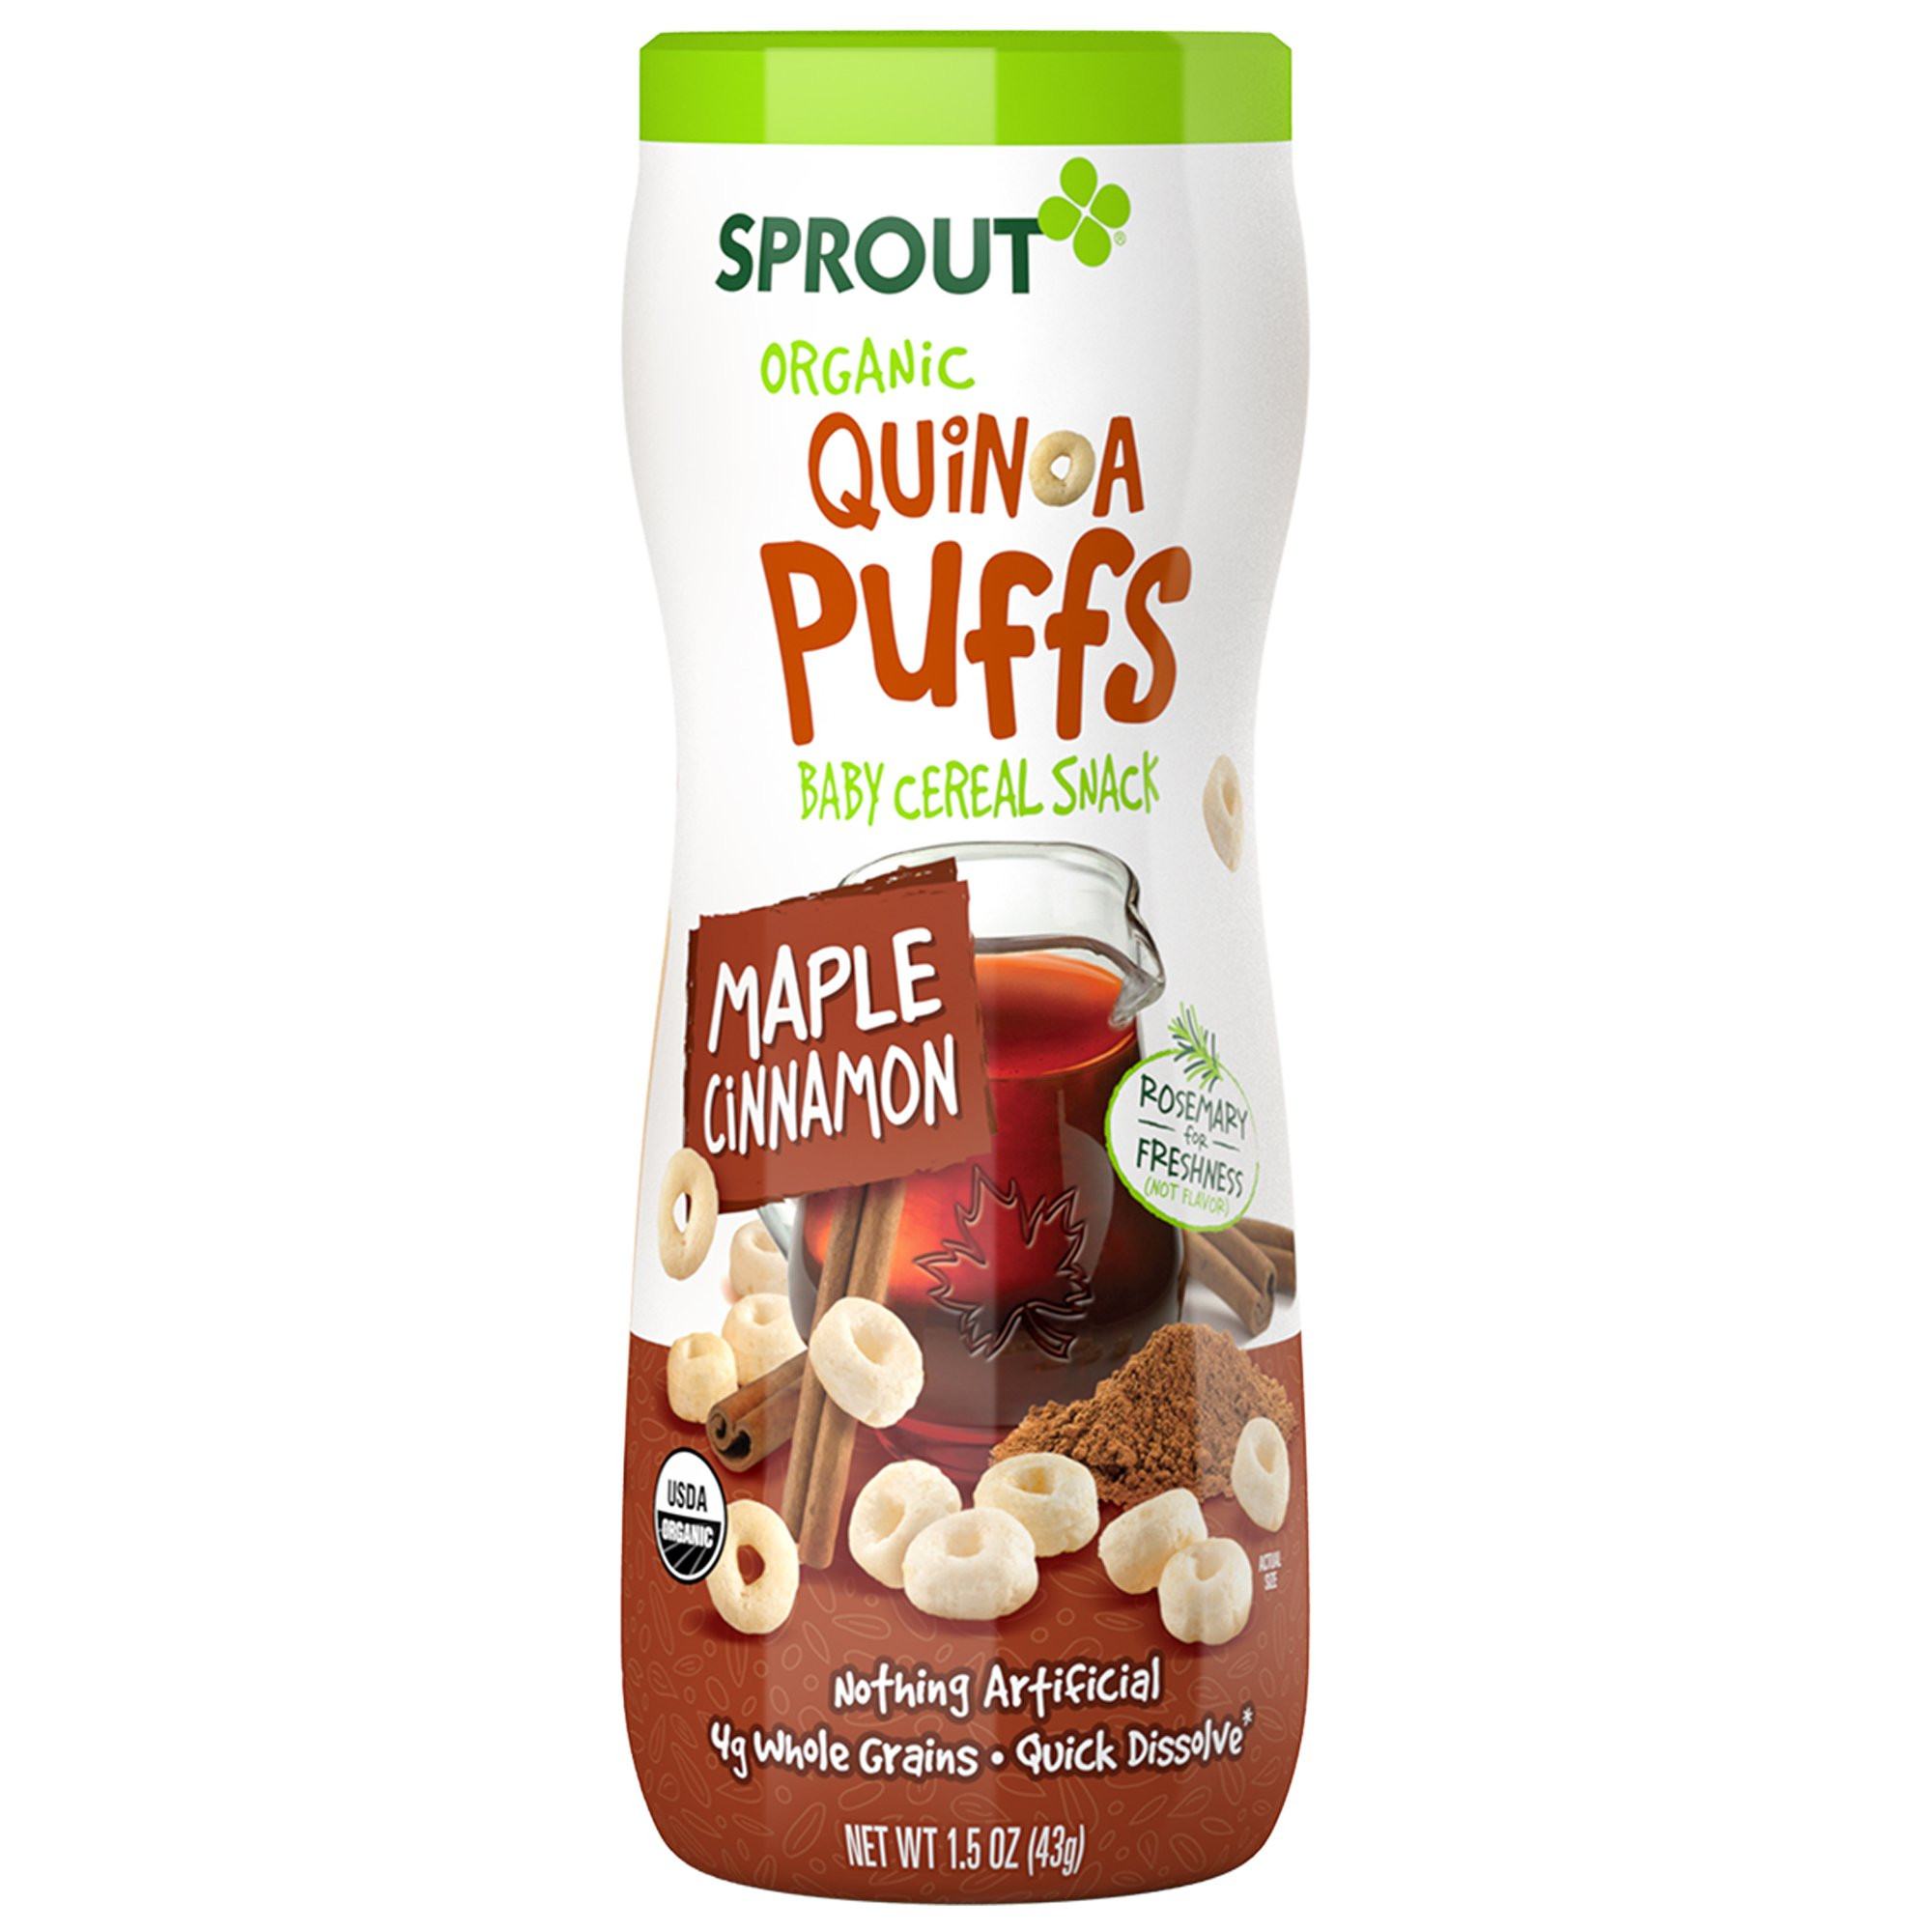 Organic Quinoa Baby Cereal  Sprout Organic Baby Food Sprout Organic Curlz Toddler